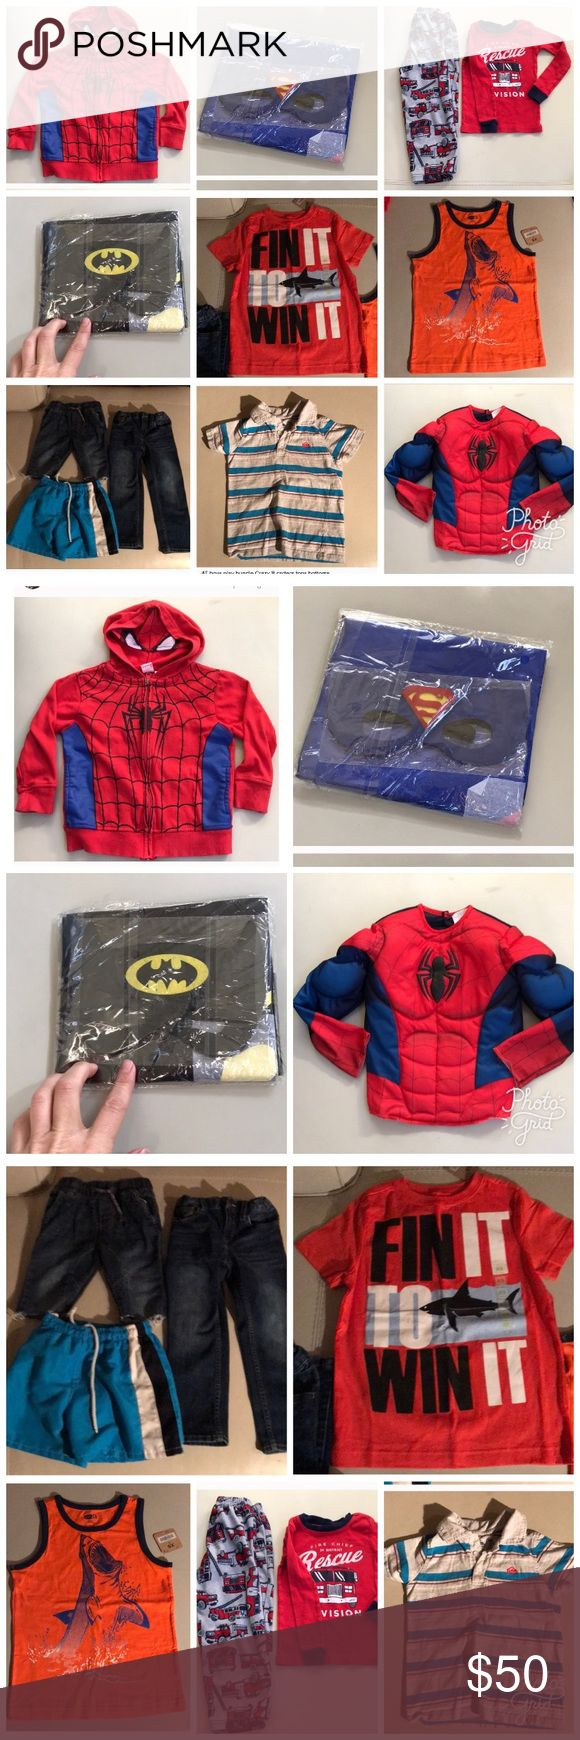 4T boy Bundle kids Lot shirt pants top EUC Bundle of multiple excellent condition EUC boy toddler child kid size 4T Includes : Batman cape and mask (new) Captain America silky cape and felt mask (new) Spider-Man muscle costume shirt great condition Spider-Man sweatshirt hoodie with masked hood great condition  Carters Truck pj set EUC Quick silver stripes polo tshirt GUC OshKosh Jean cut off shorts GUC Tucker & Tate 4t Jeans EUC Swim shorts blue stripes GUC Crazy 8 shark tank top NWT  Crazy…